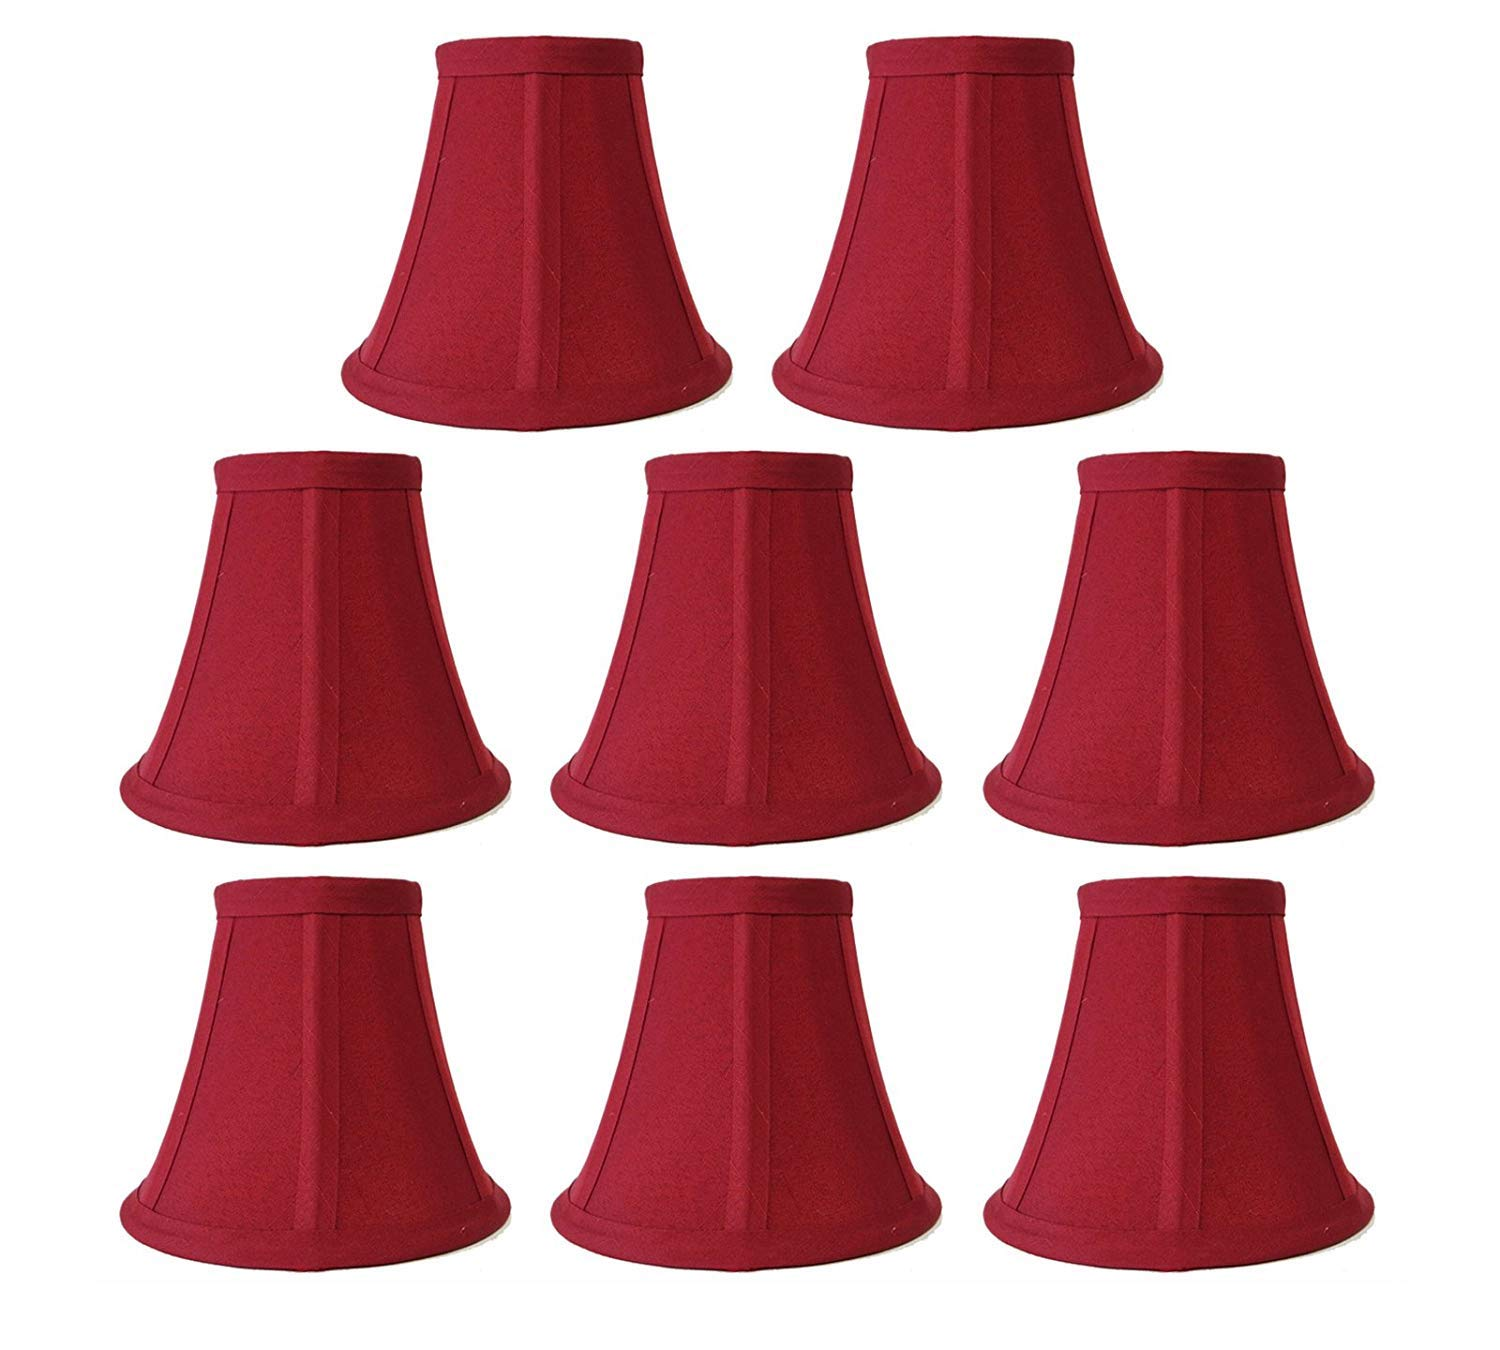 Premium Quality 8-Pack Mini Bell Lamp Shade Lampshade 5''H Clip On Style(8pcs) for Chandeliers Wall Sconces Accent Lamps Beautiful Lighting Decor Red Color